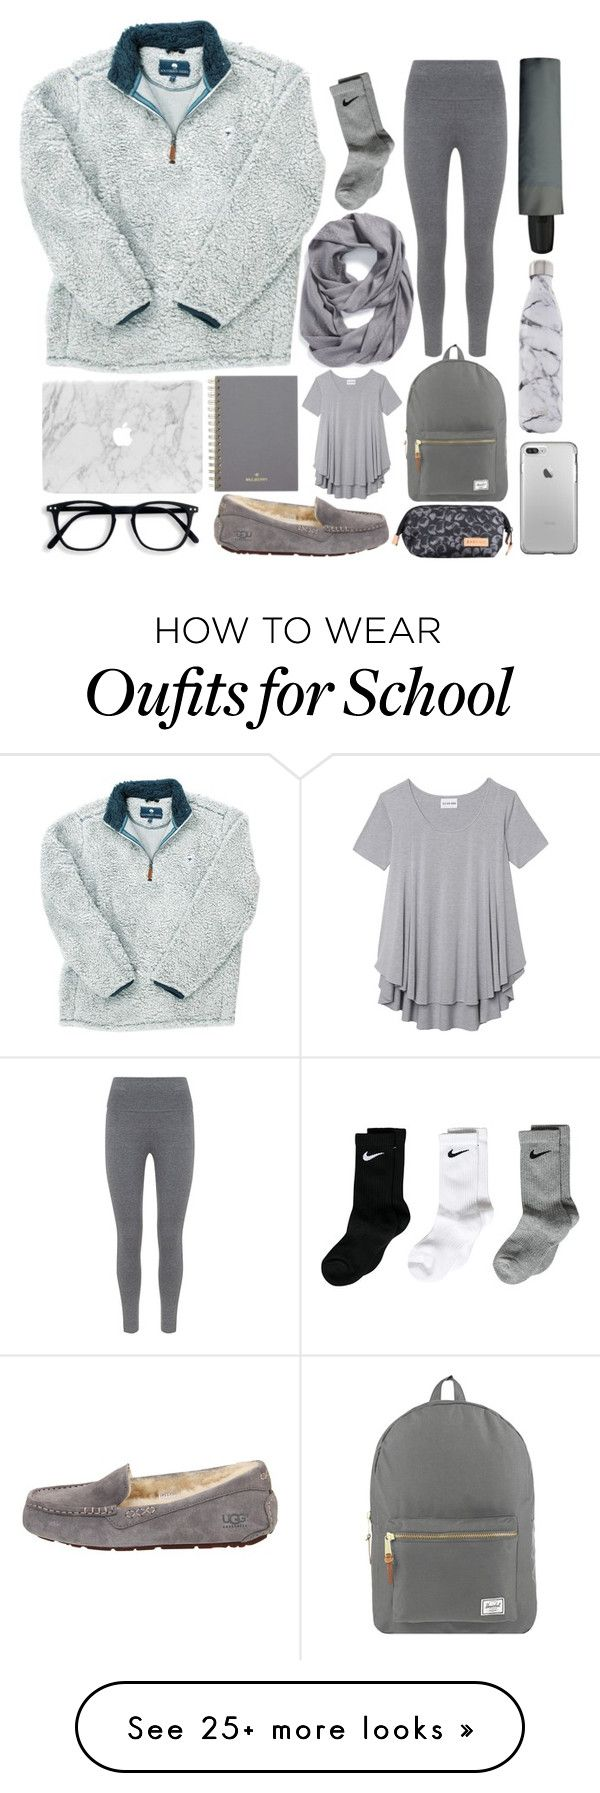 """School"" by thesabriner on Polyvore featuring Mulberry, Tory Burch, Olive + Oak, NIKE, UGG Australia, Mint Velvet, Minimal, Herschel Supply Co., S'well and Eastpak"